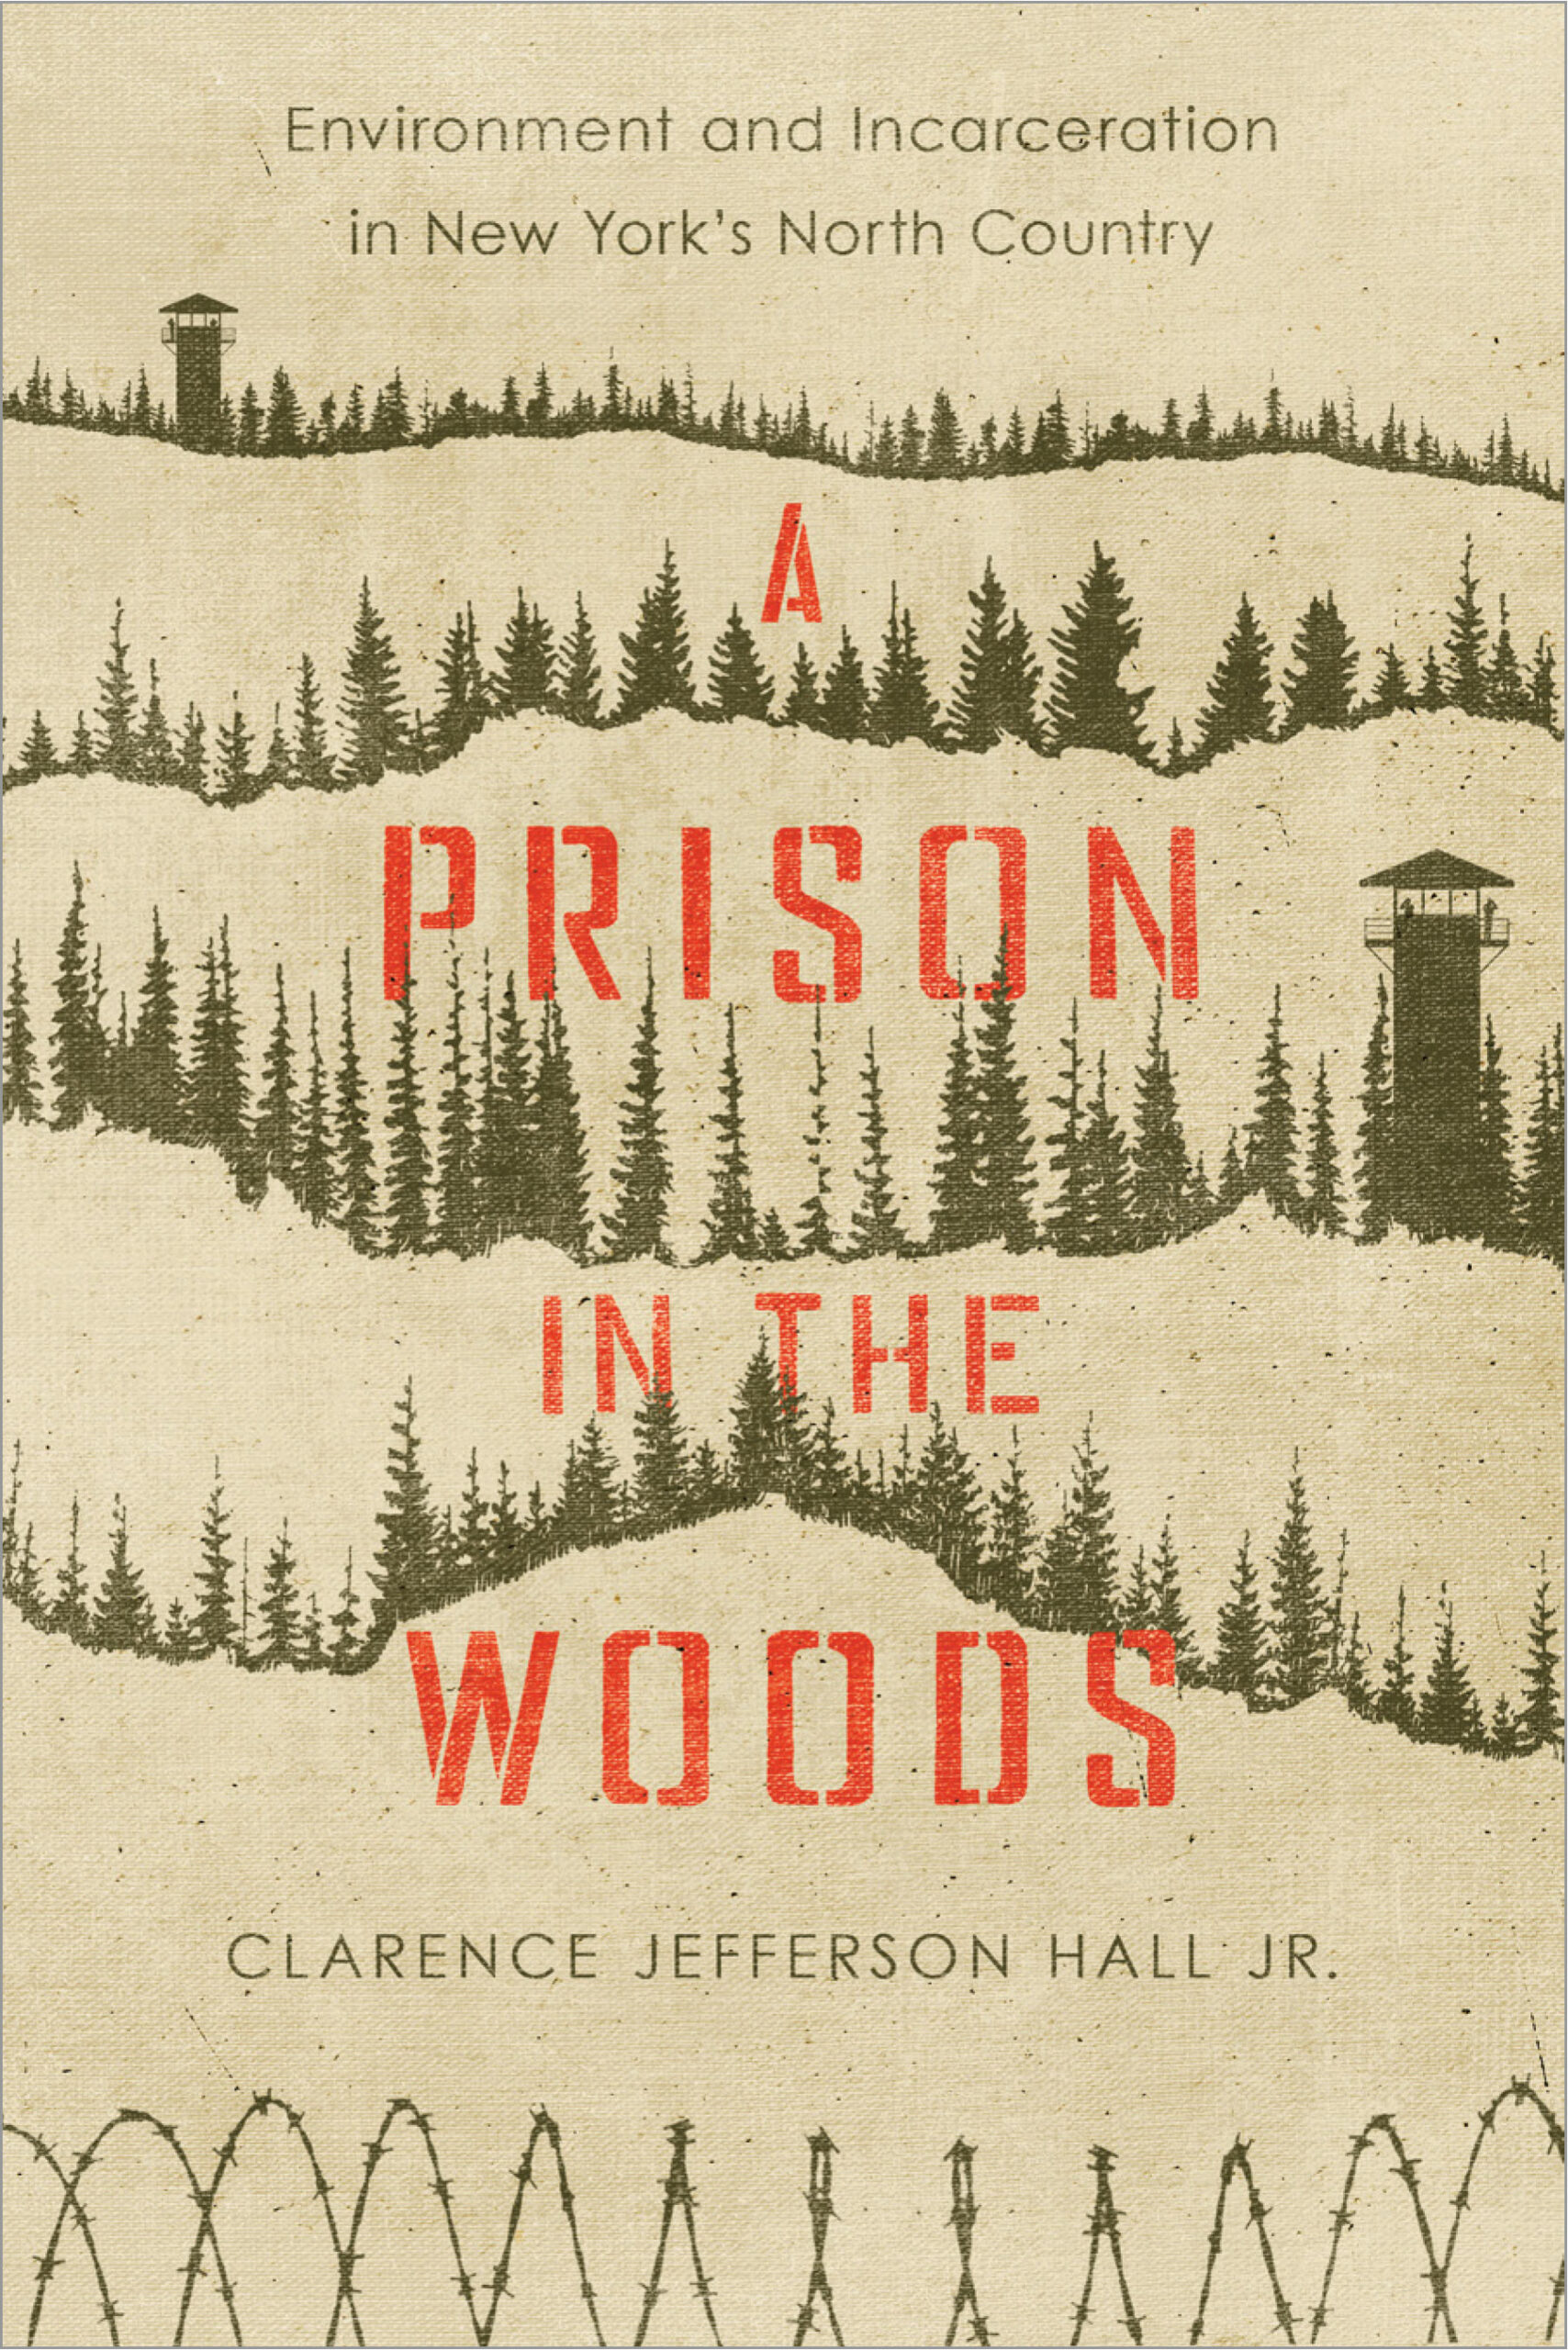 book cover, trees and prison tower